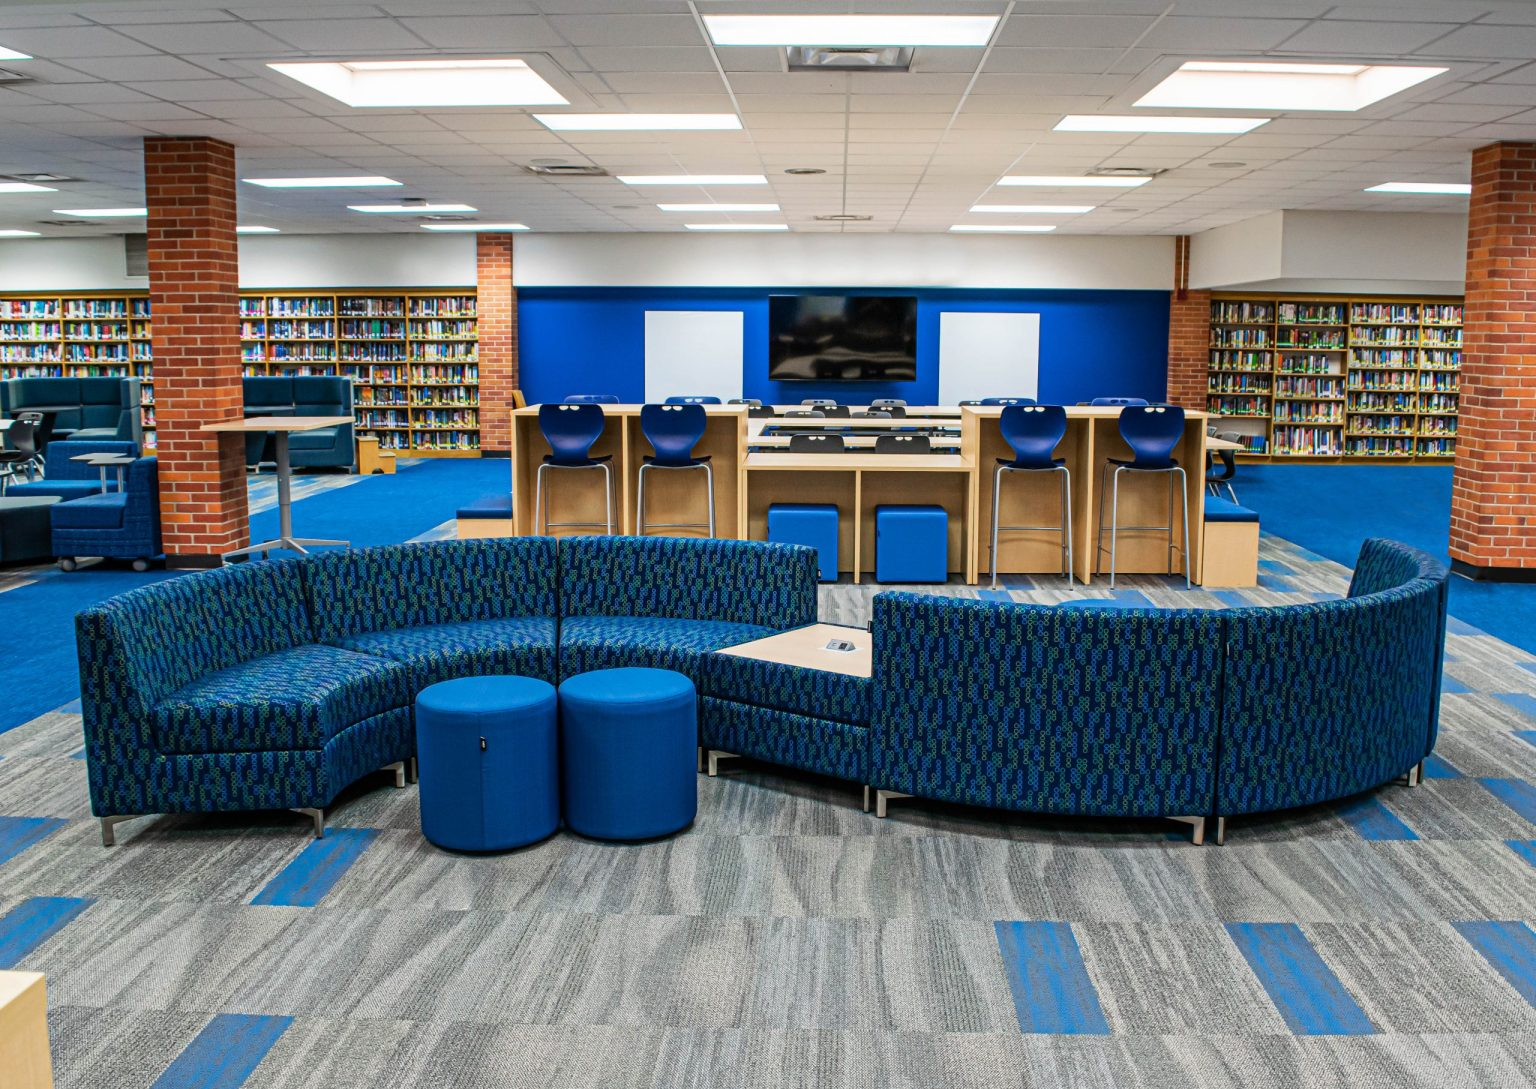 Districtwide Modernization Project Transforms Media Centers into Activity Hubs